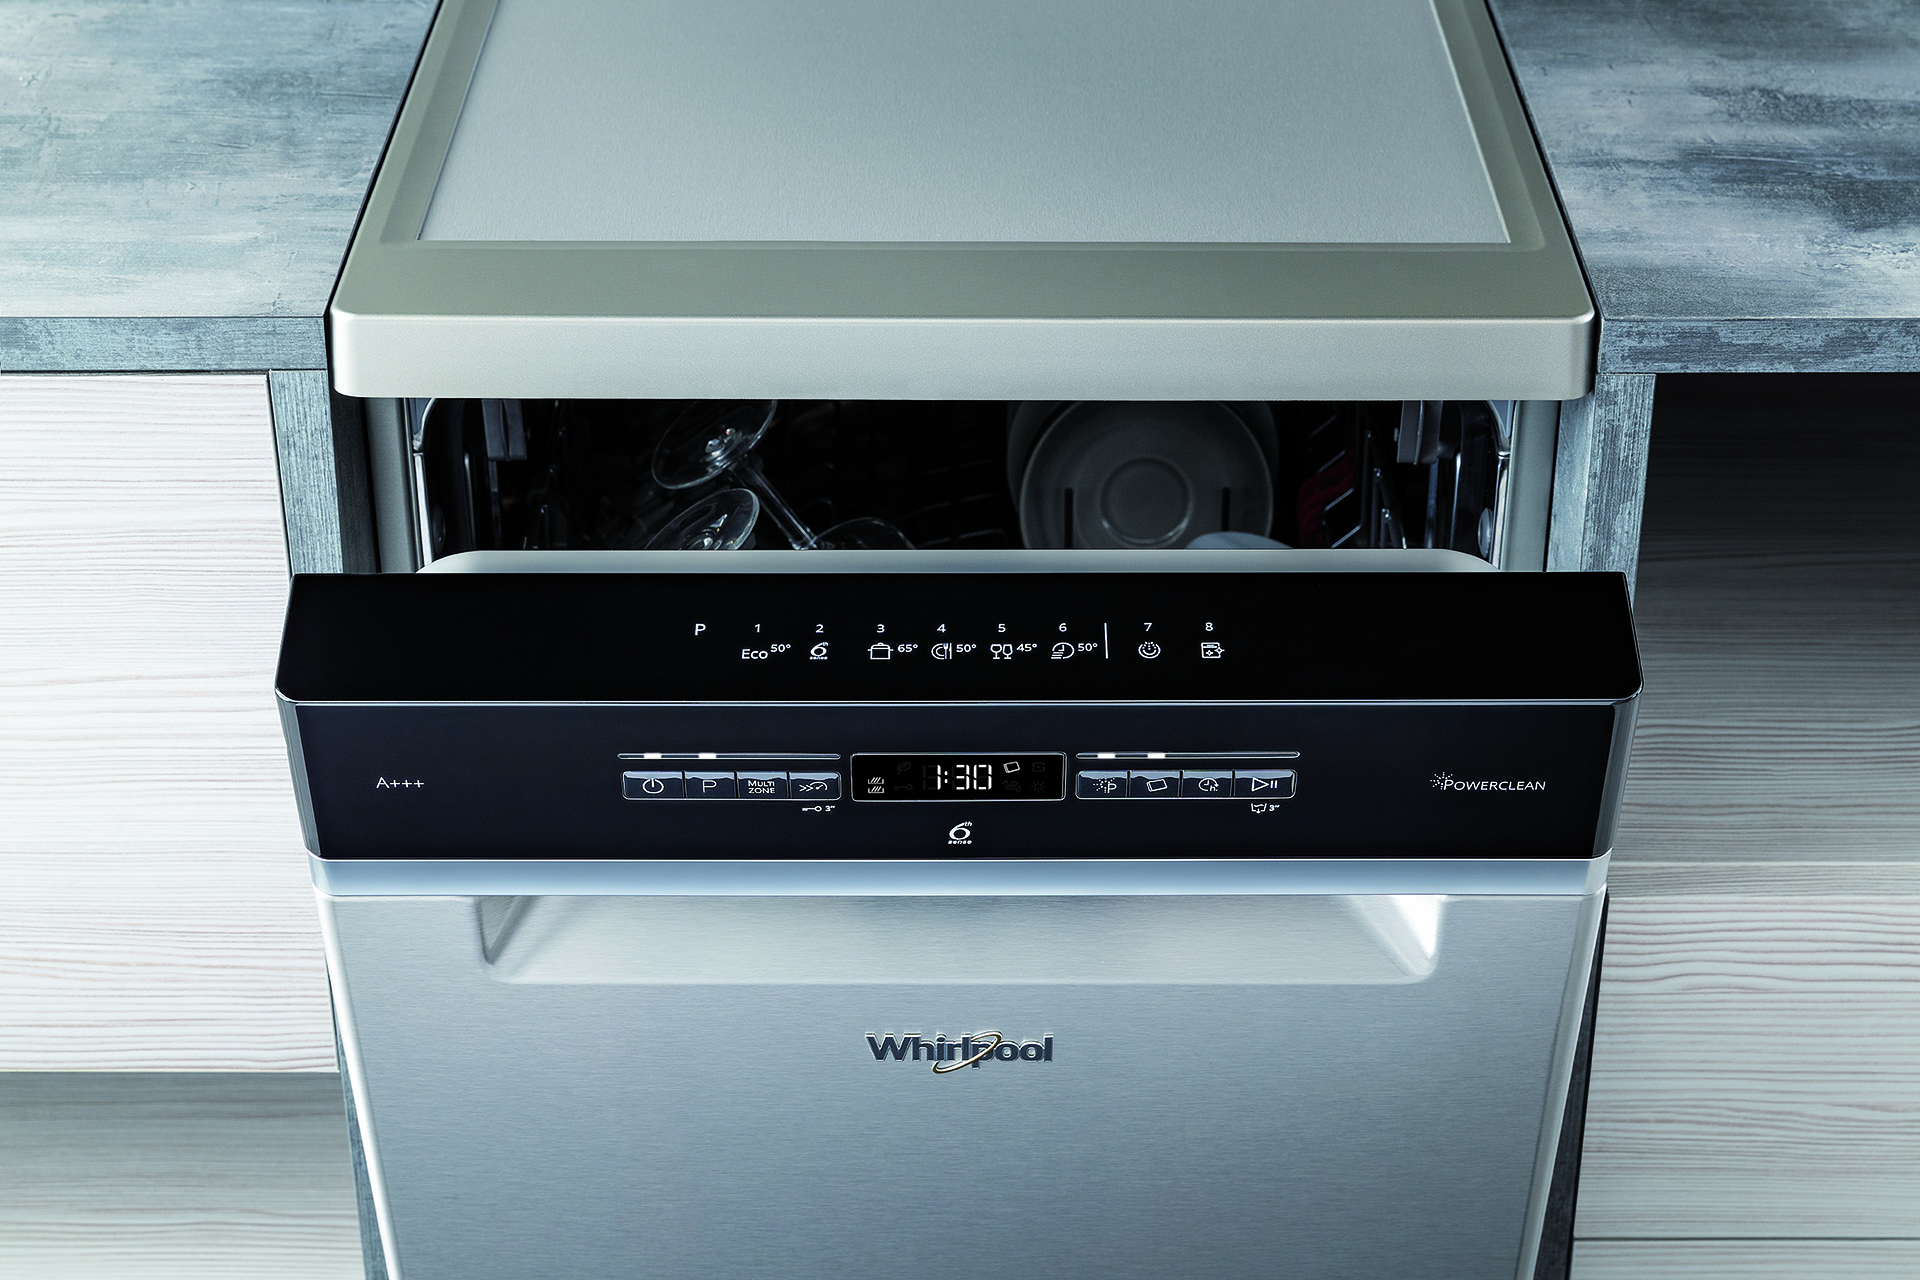 Whirlpool W Collection Supreme Clean Dishwasher